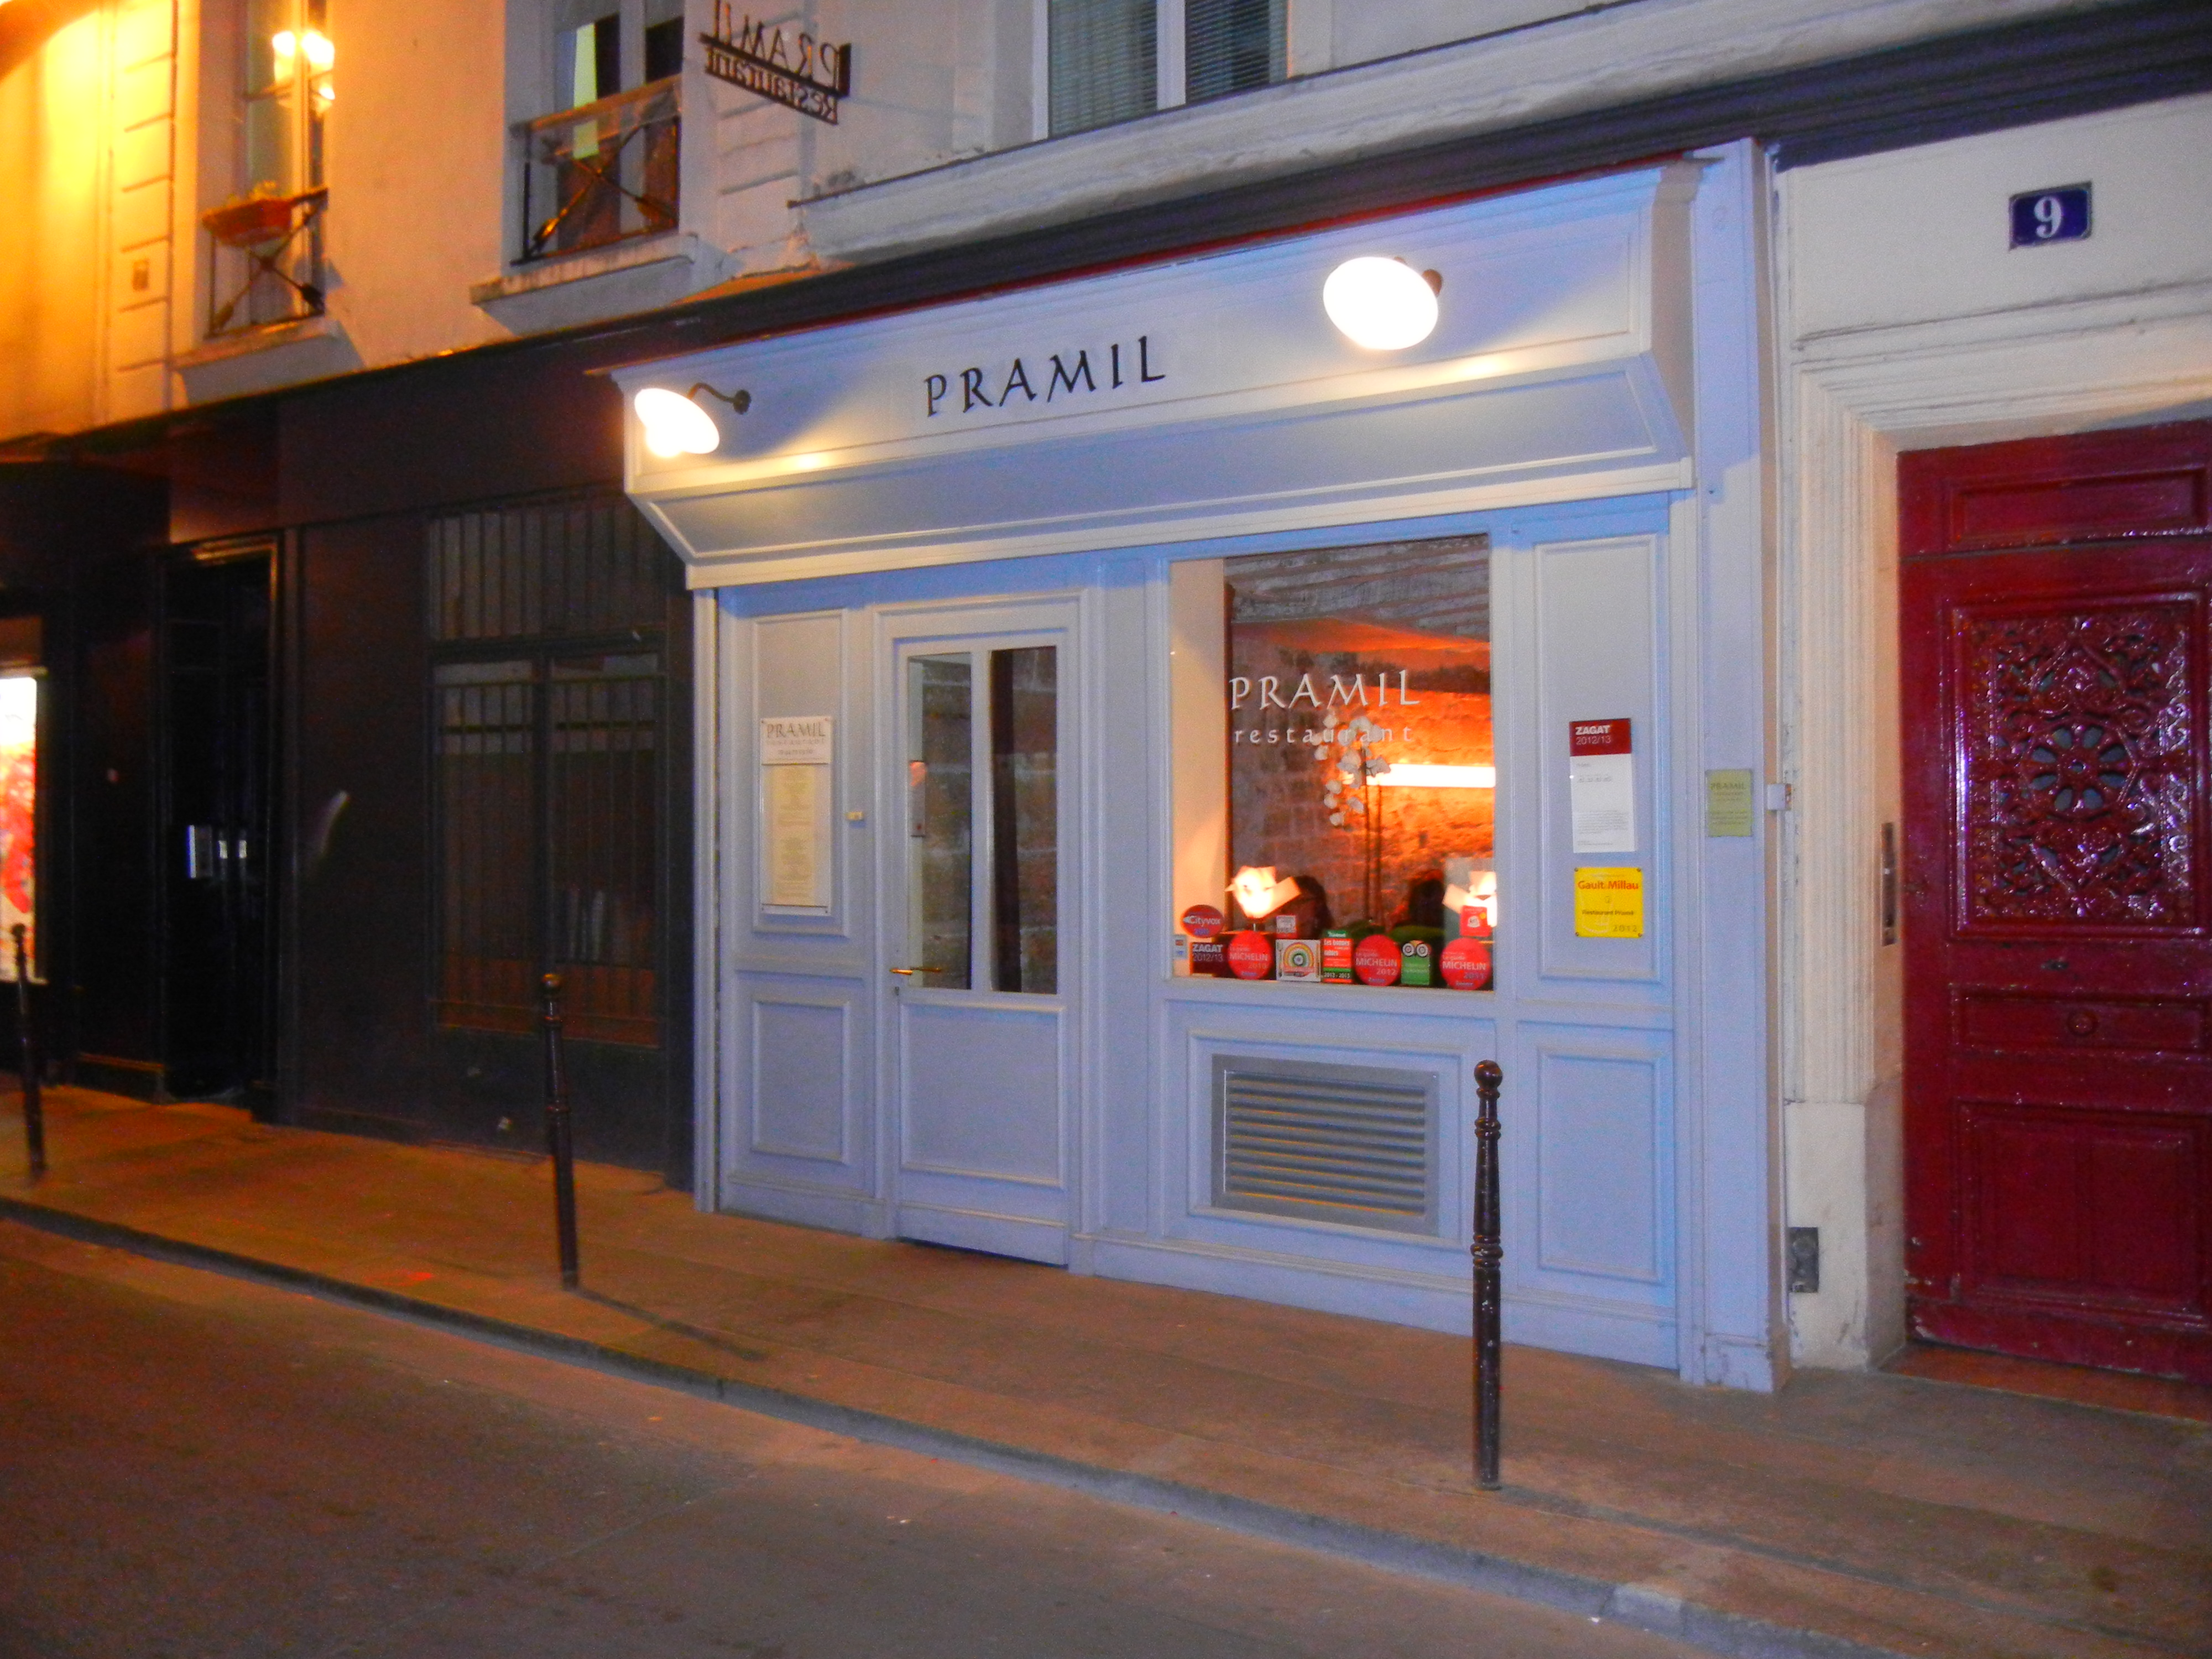 Pramil is my favorite restaurant in Paris